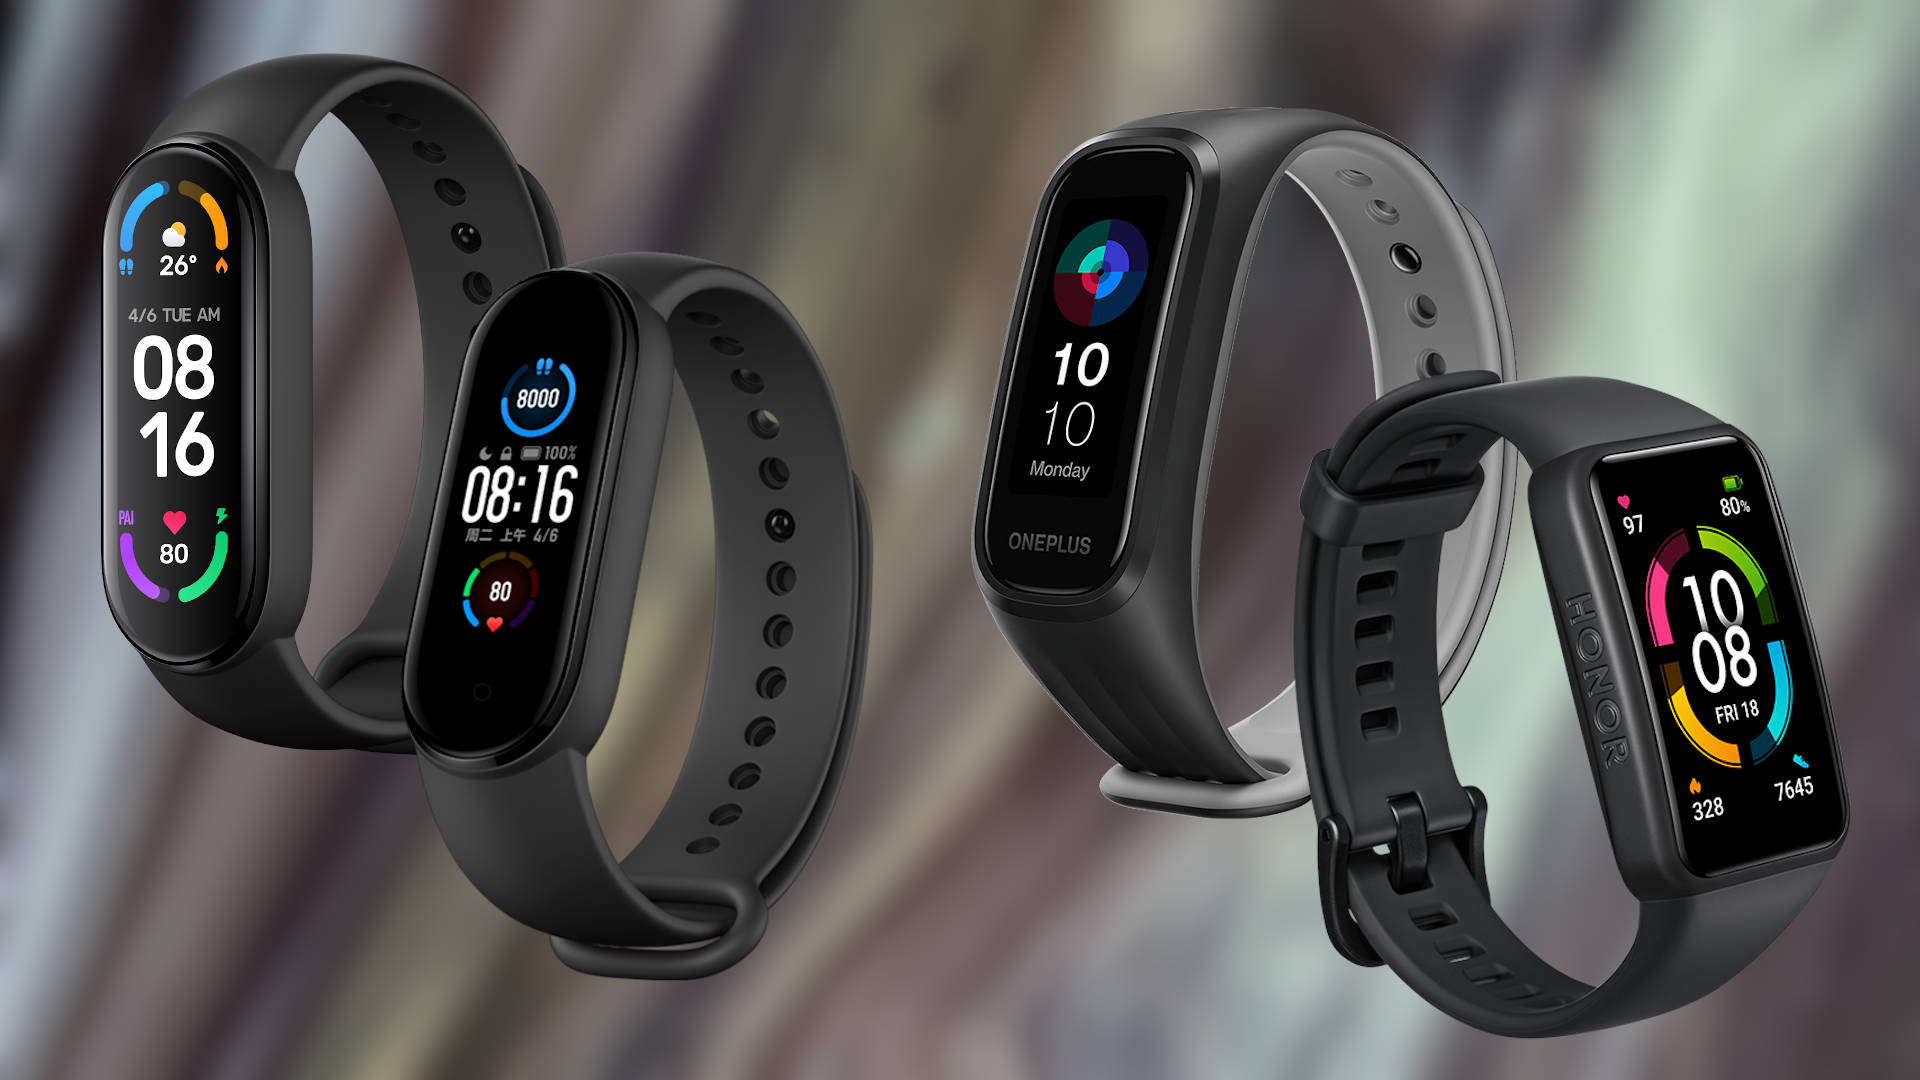 xiaomi mi band 6 vs OnePlus Band vs Xiaomi Mi Band 5 vs Amazfit Band 5 vs Honor Band 6